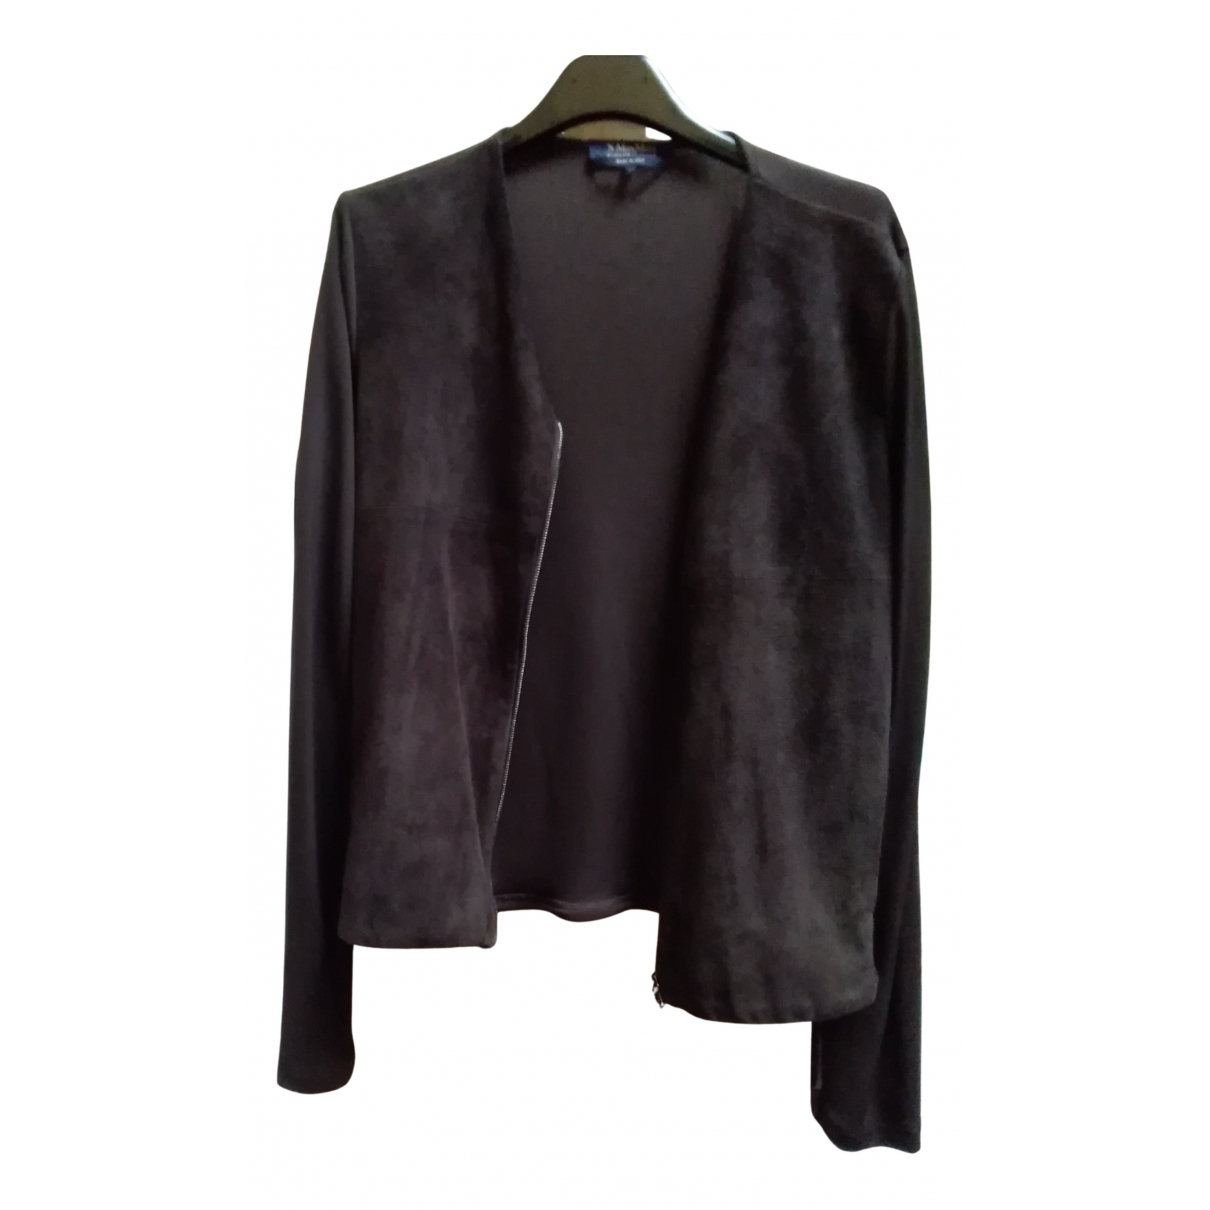 Max Mara 's N Brown Suede Leather jacket for Women 42 IT